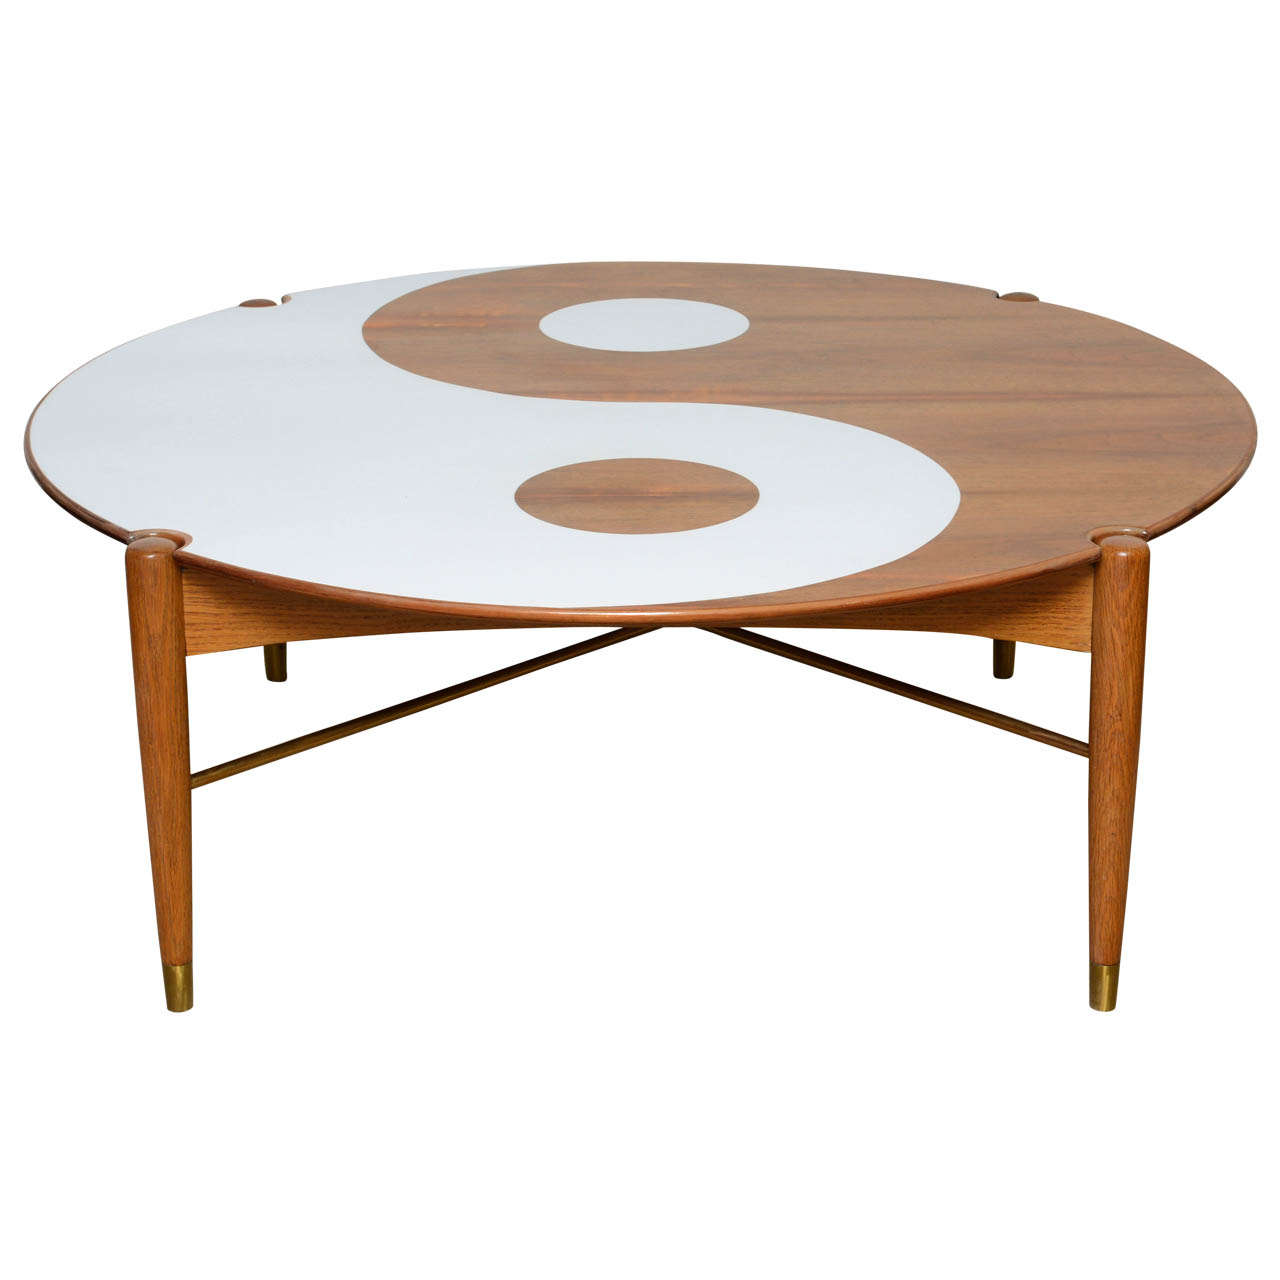 Yin and yang mid century modern round walnut swedish coffee table for sale at 1stdibs Mid century coffee tables